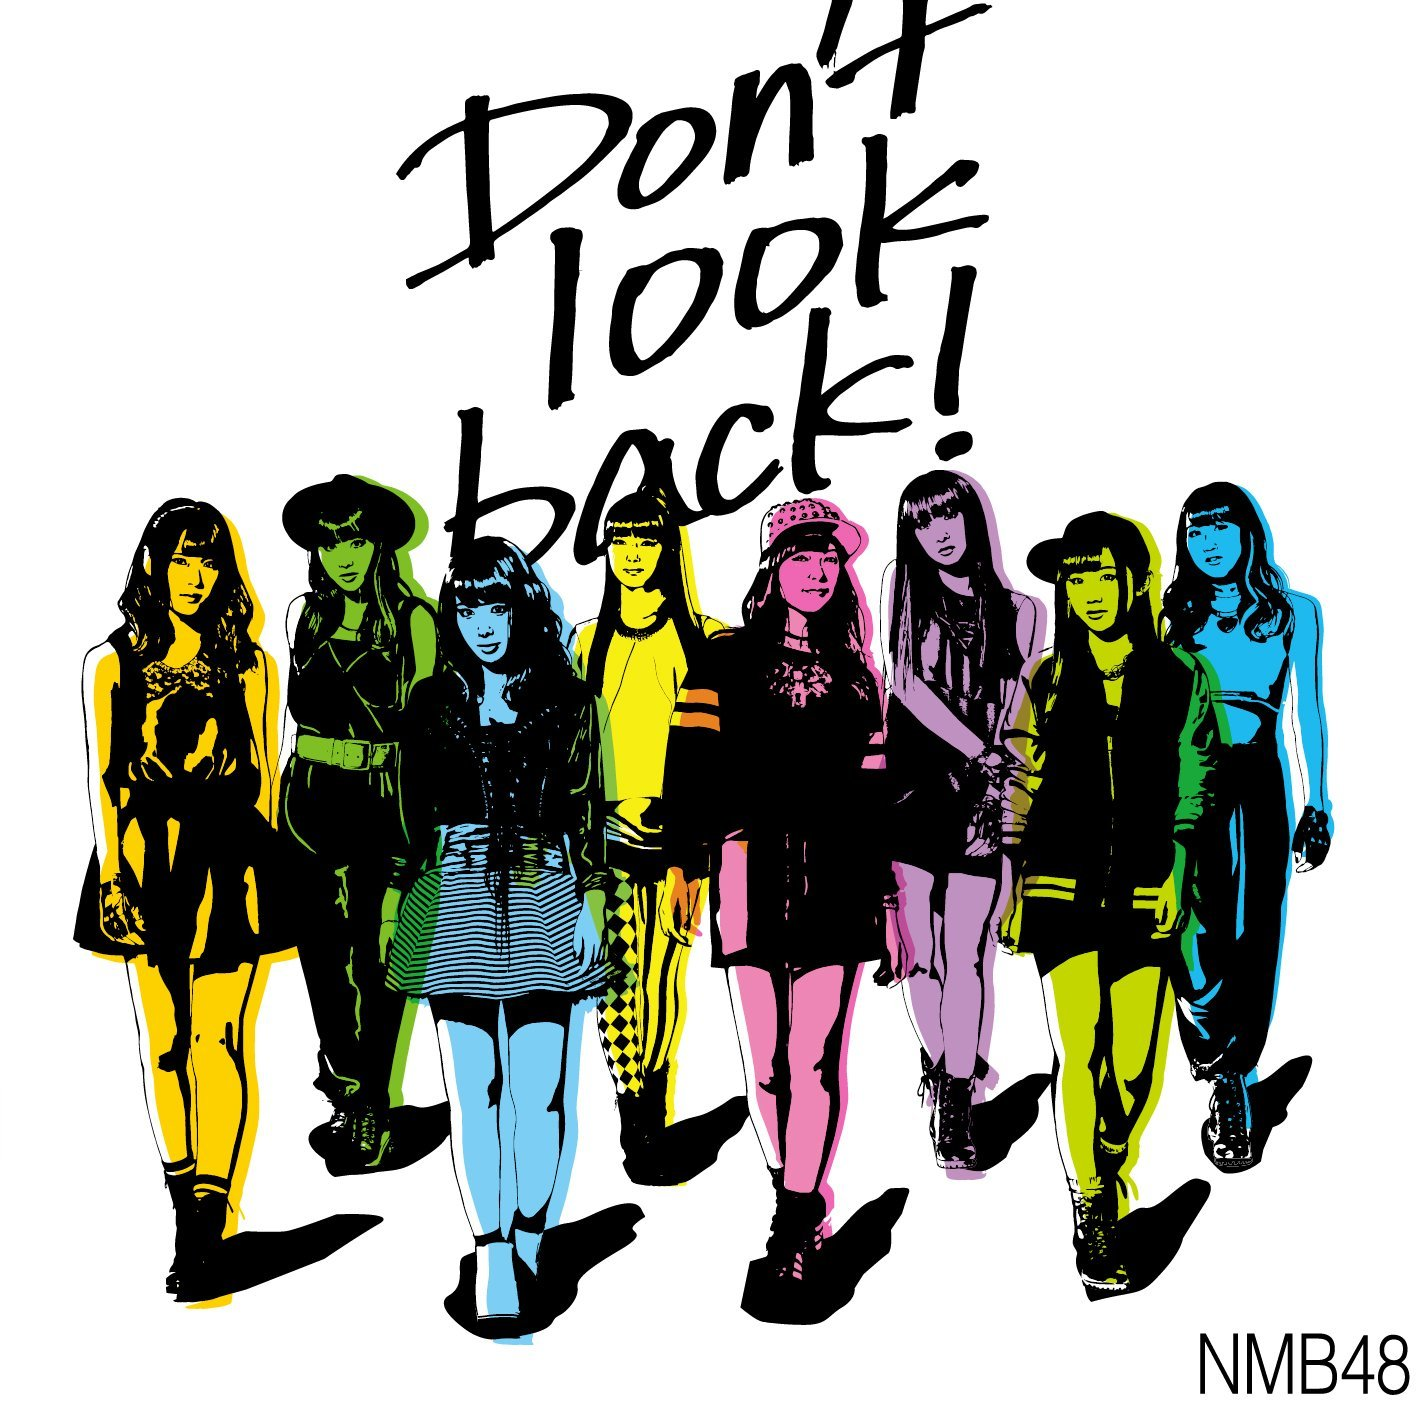 Don't look back! ジャケット  (5)